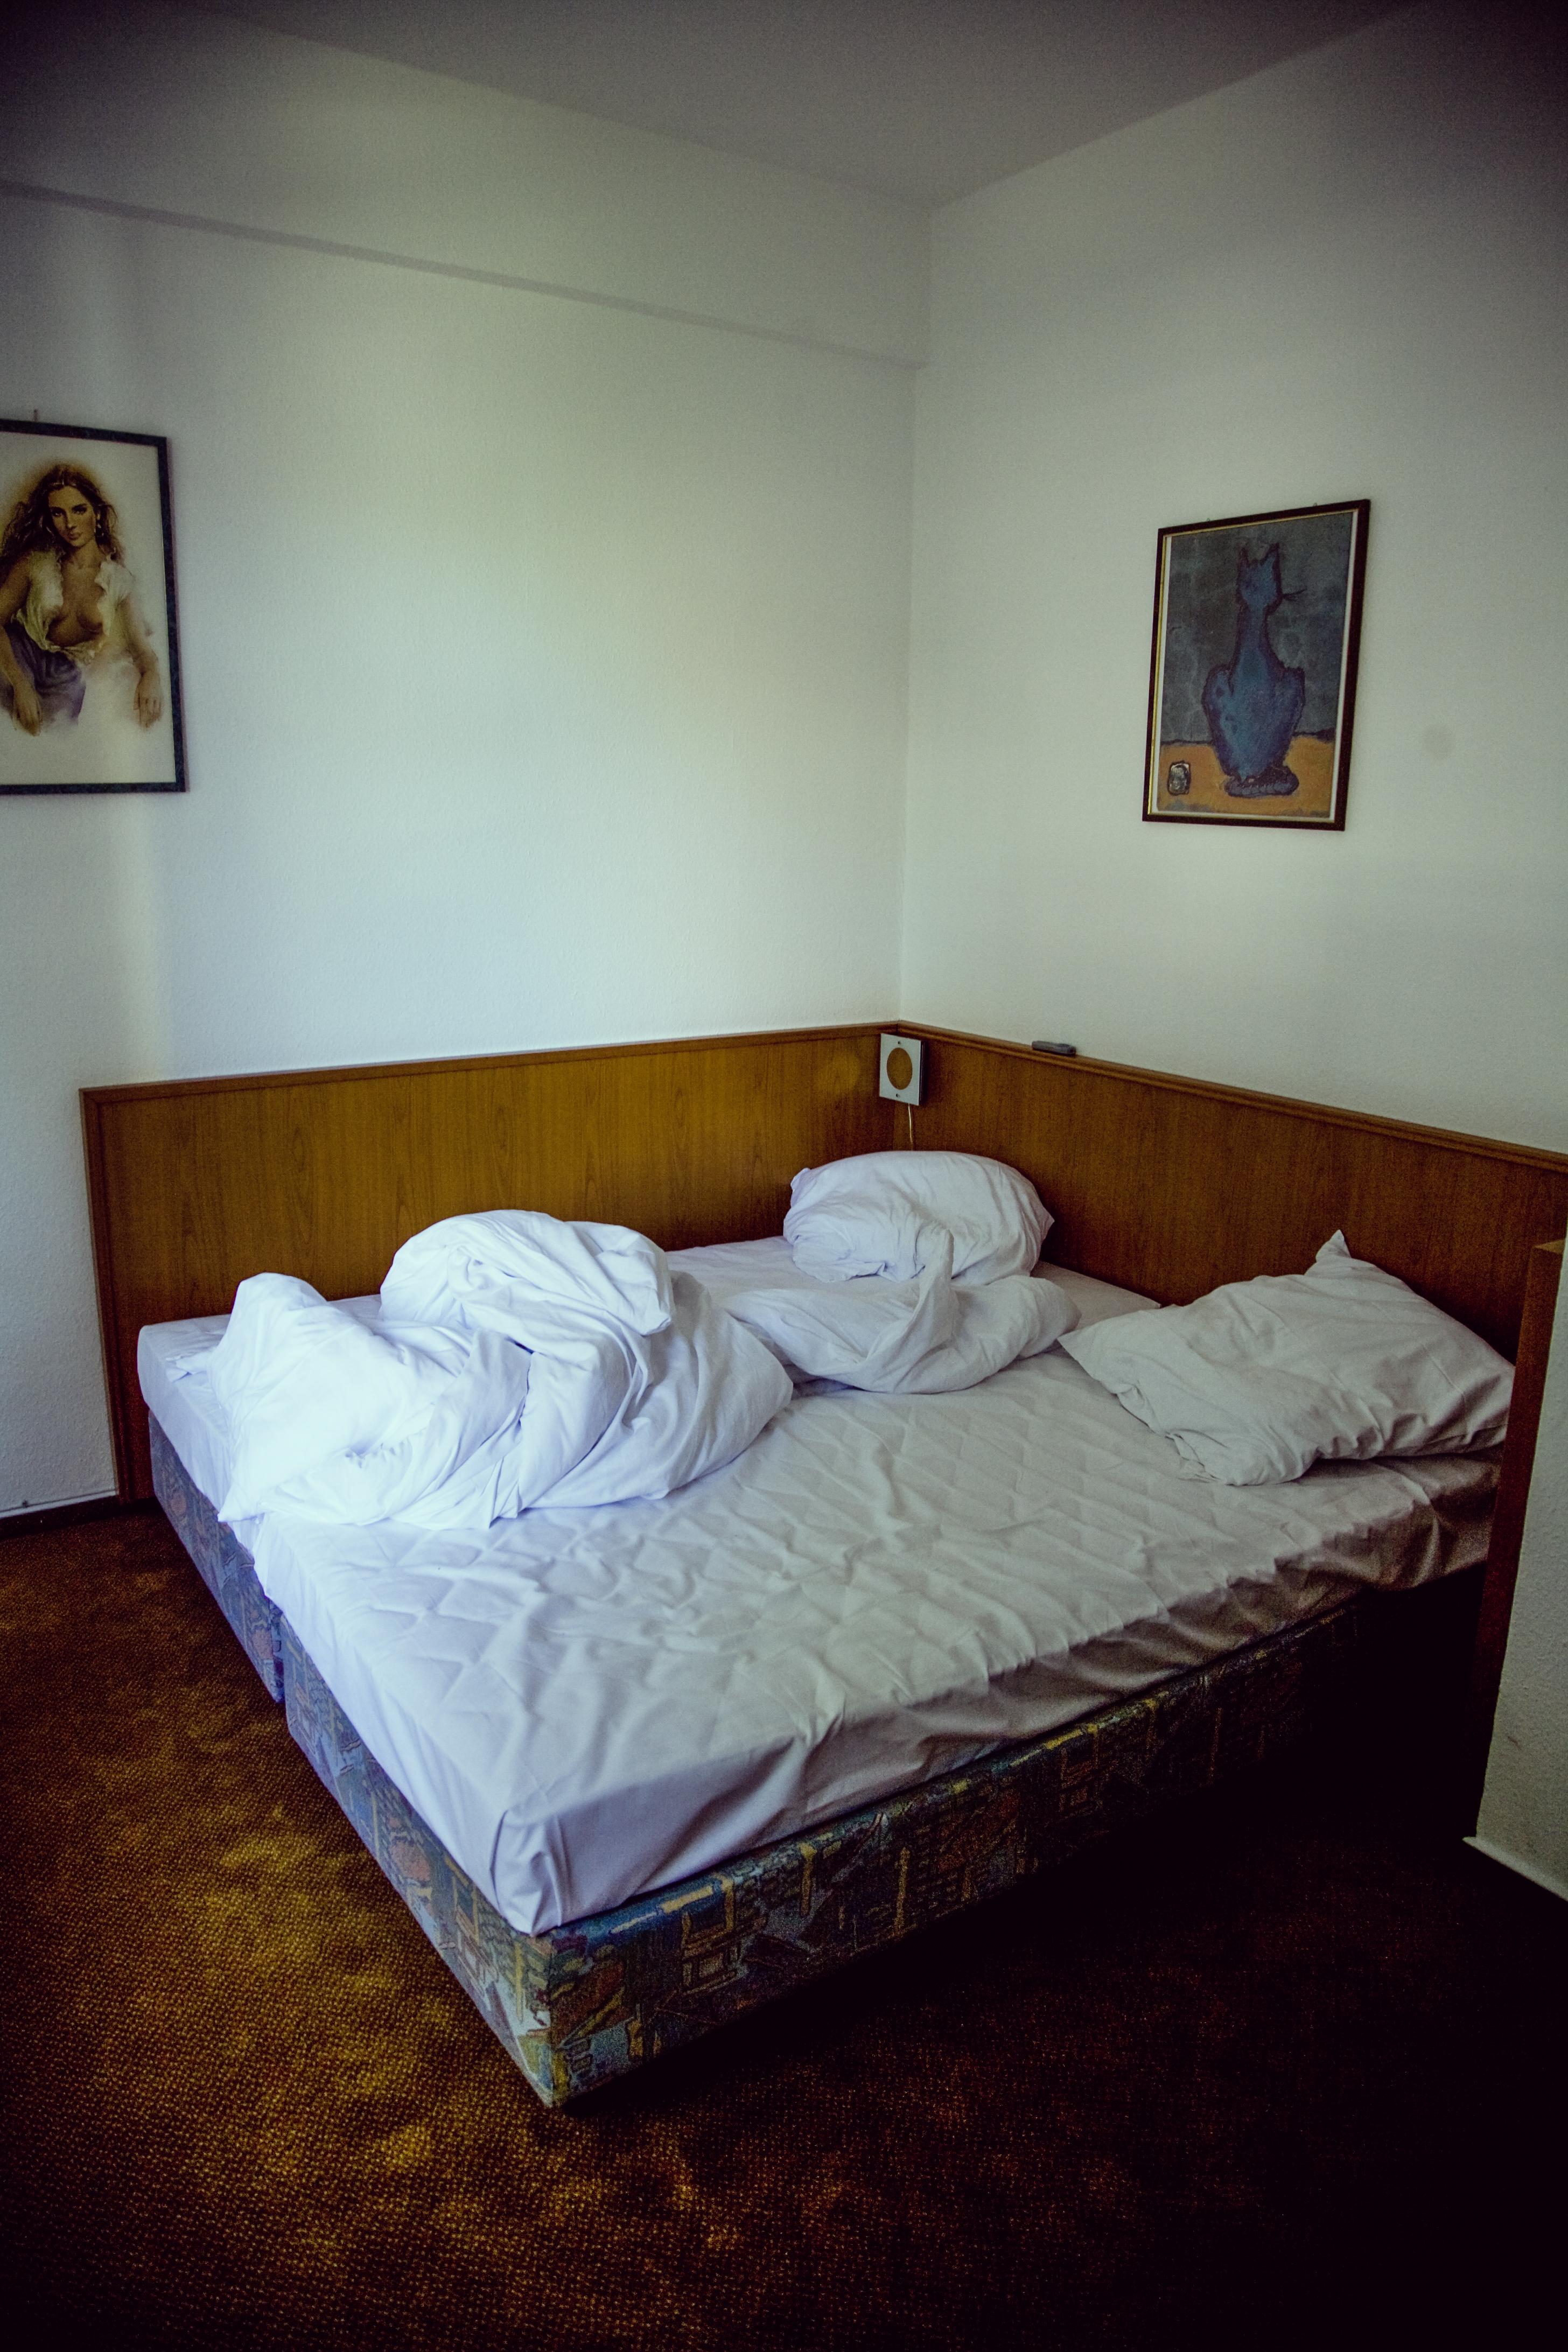 Empty Bed on Brown Floor Near Woman Painting · Free Stock